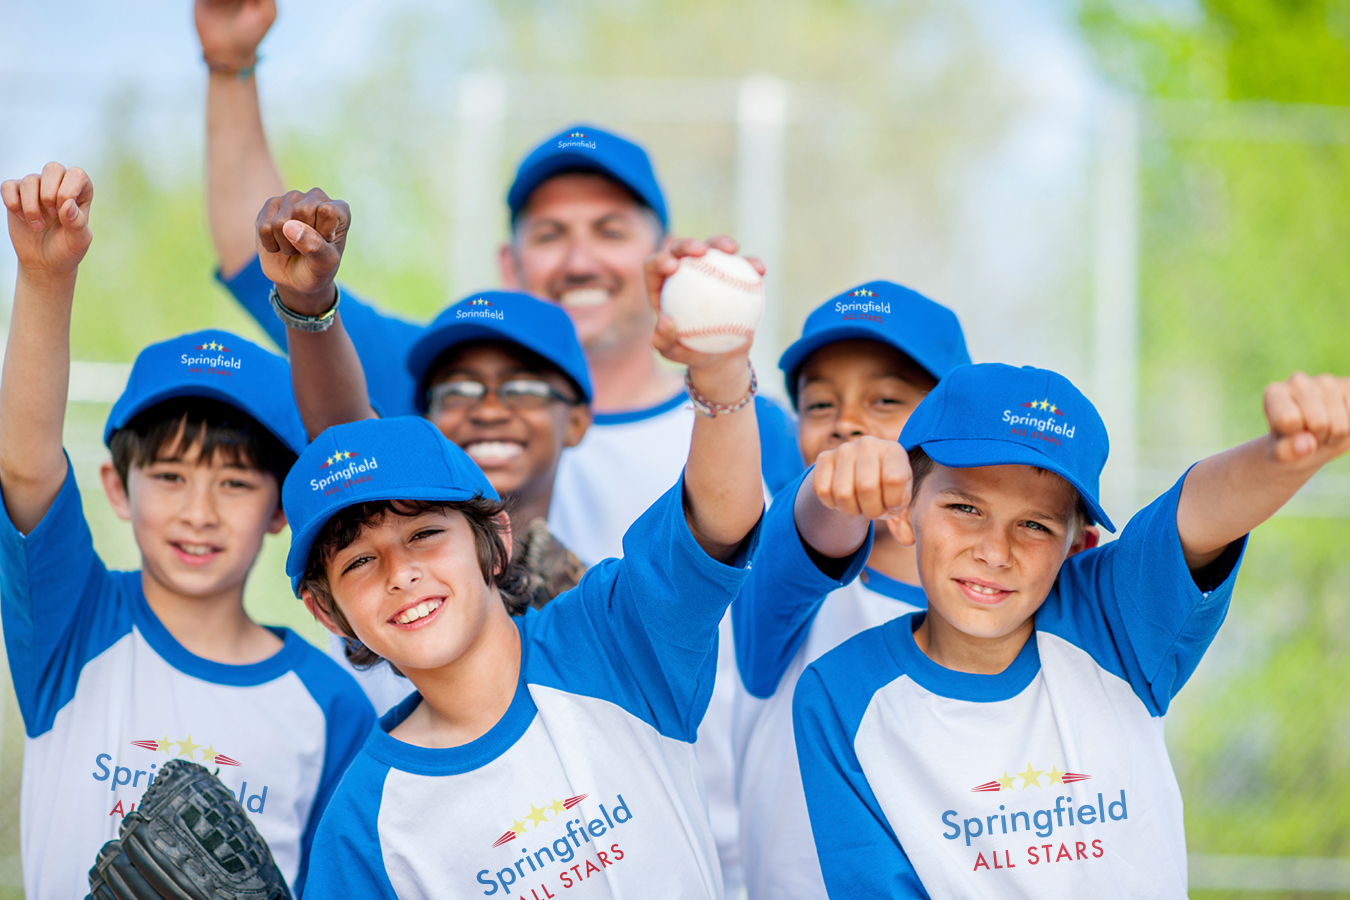 Little League kids in custom t-shirts and hats